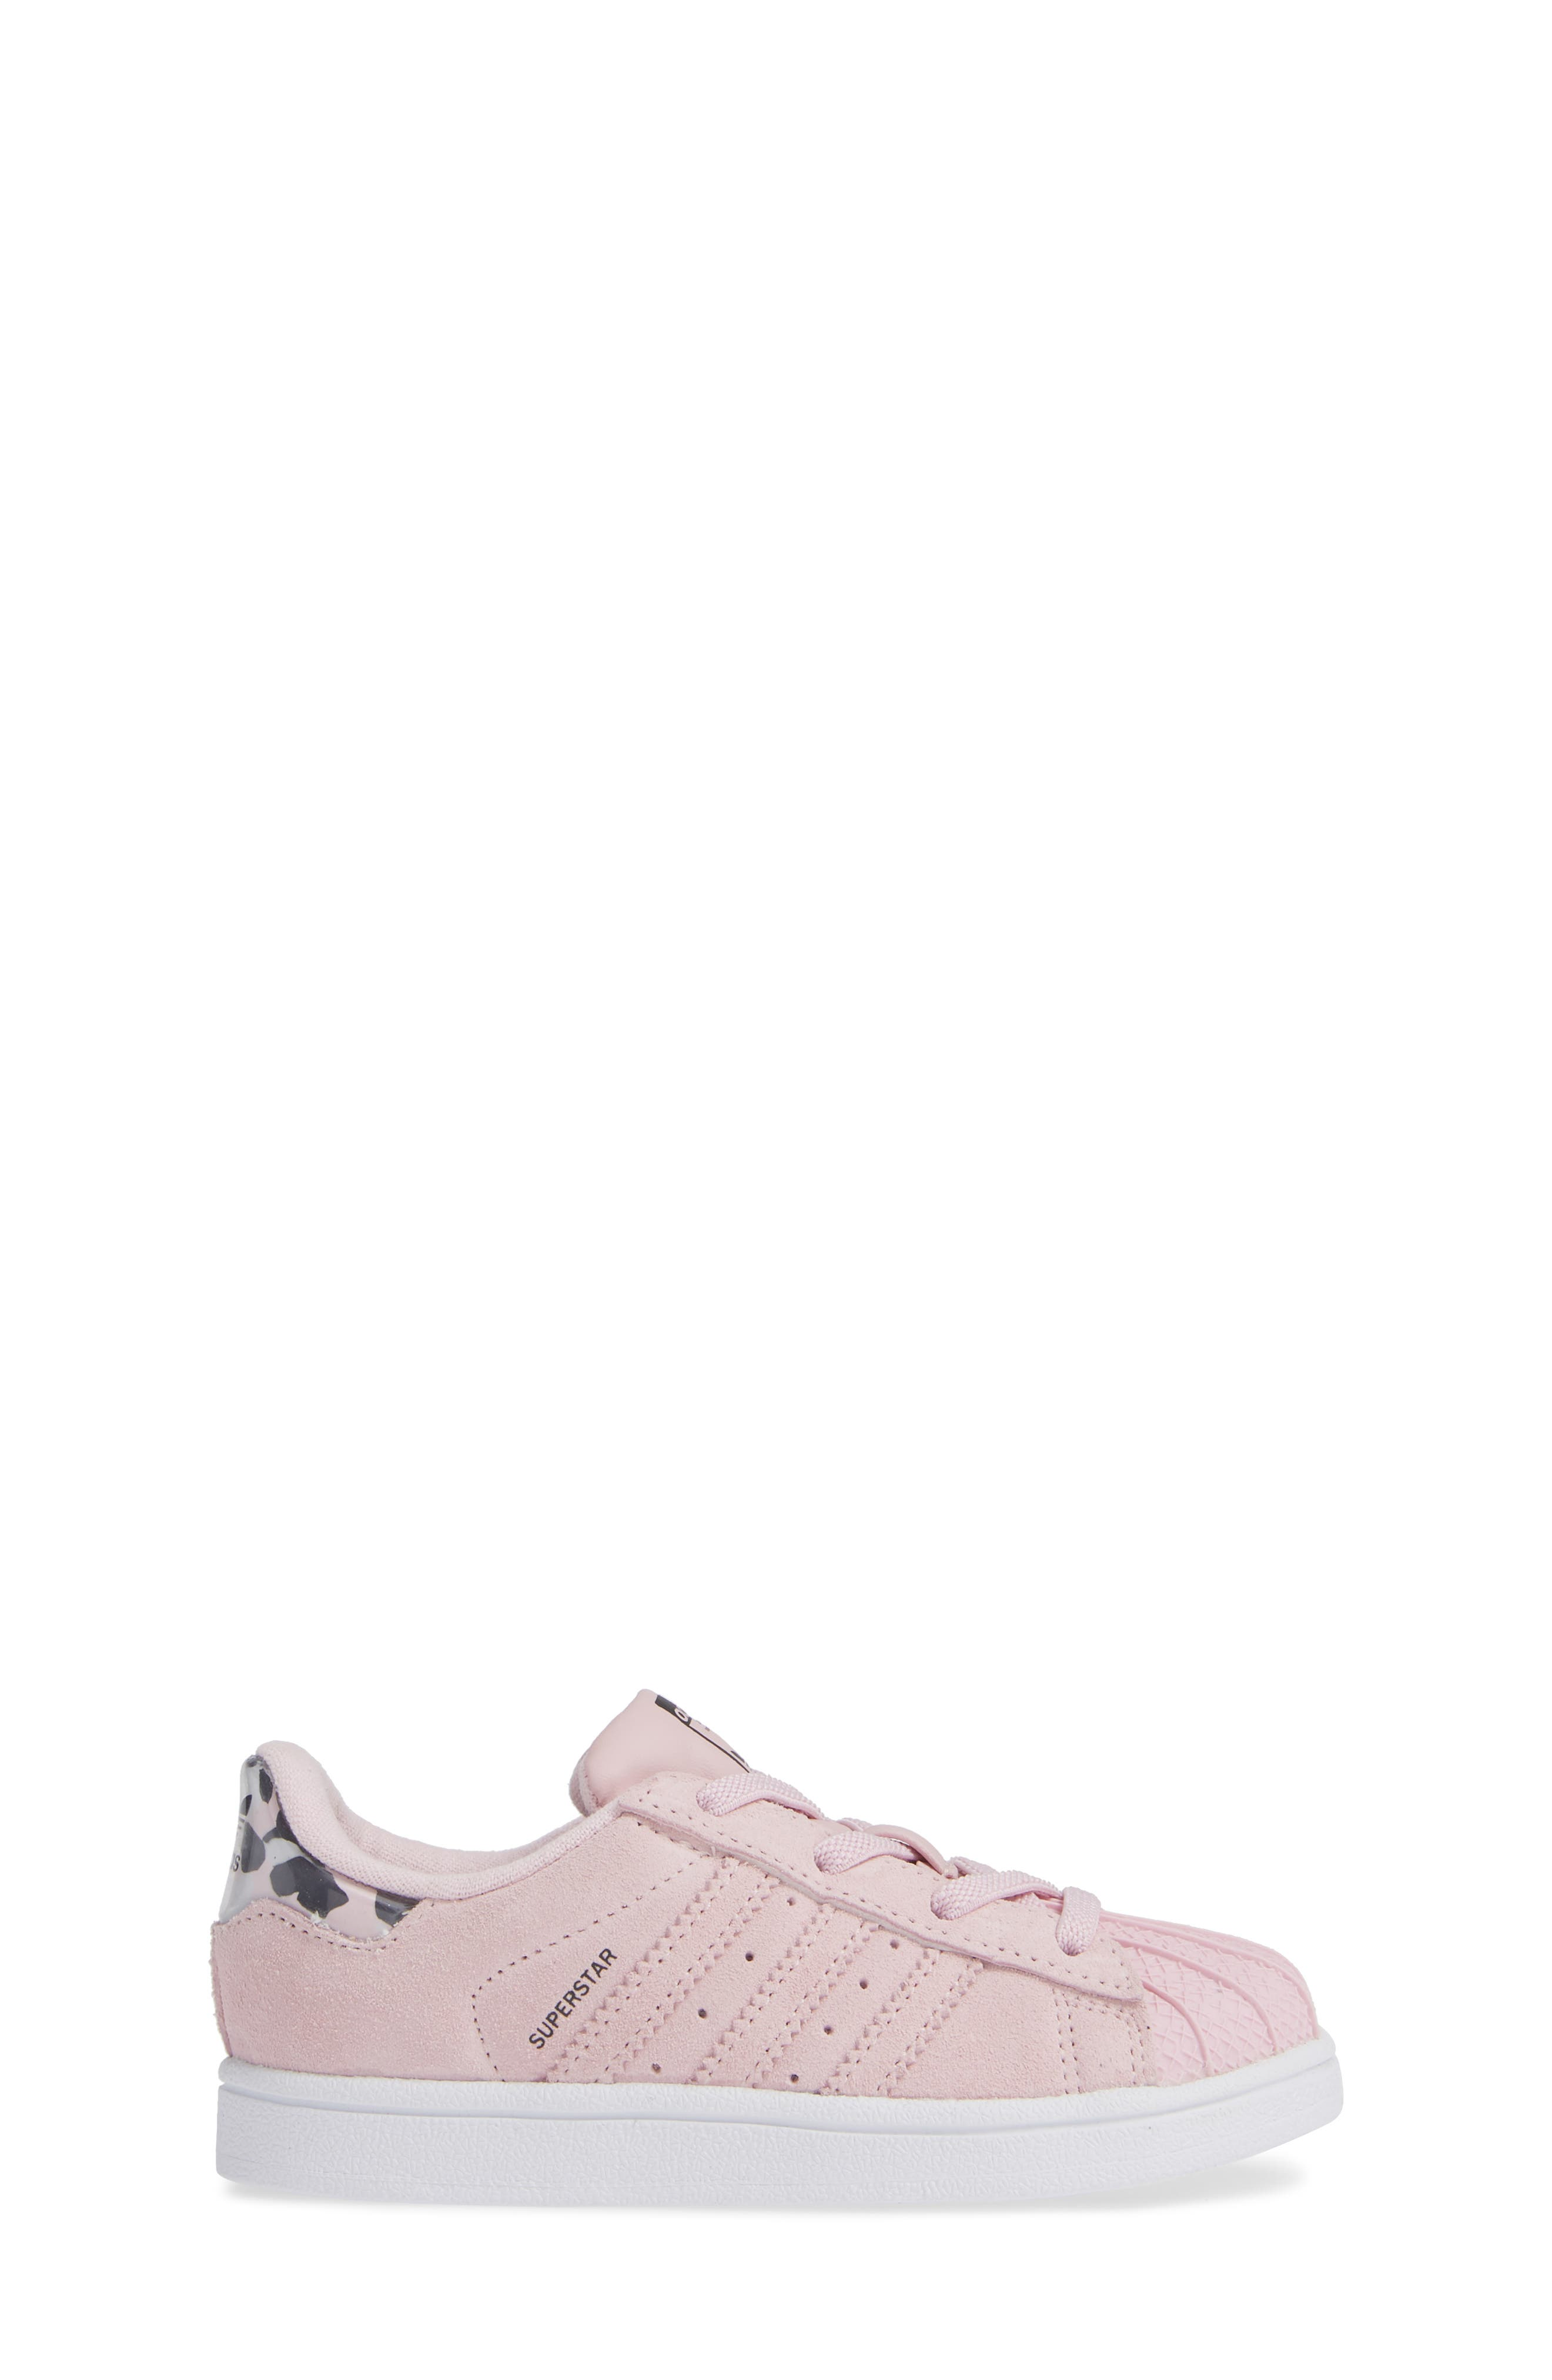 Superstar Low Top Sneaker,                             Alternate thumbnail 3, color,                             CLEAR PINK/ WHITE